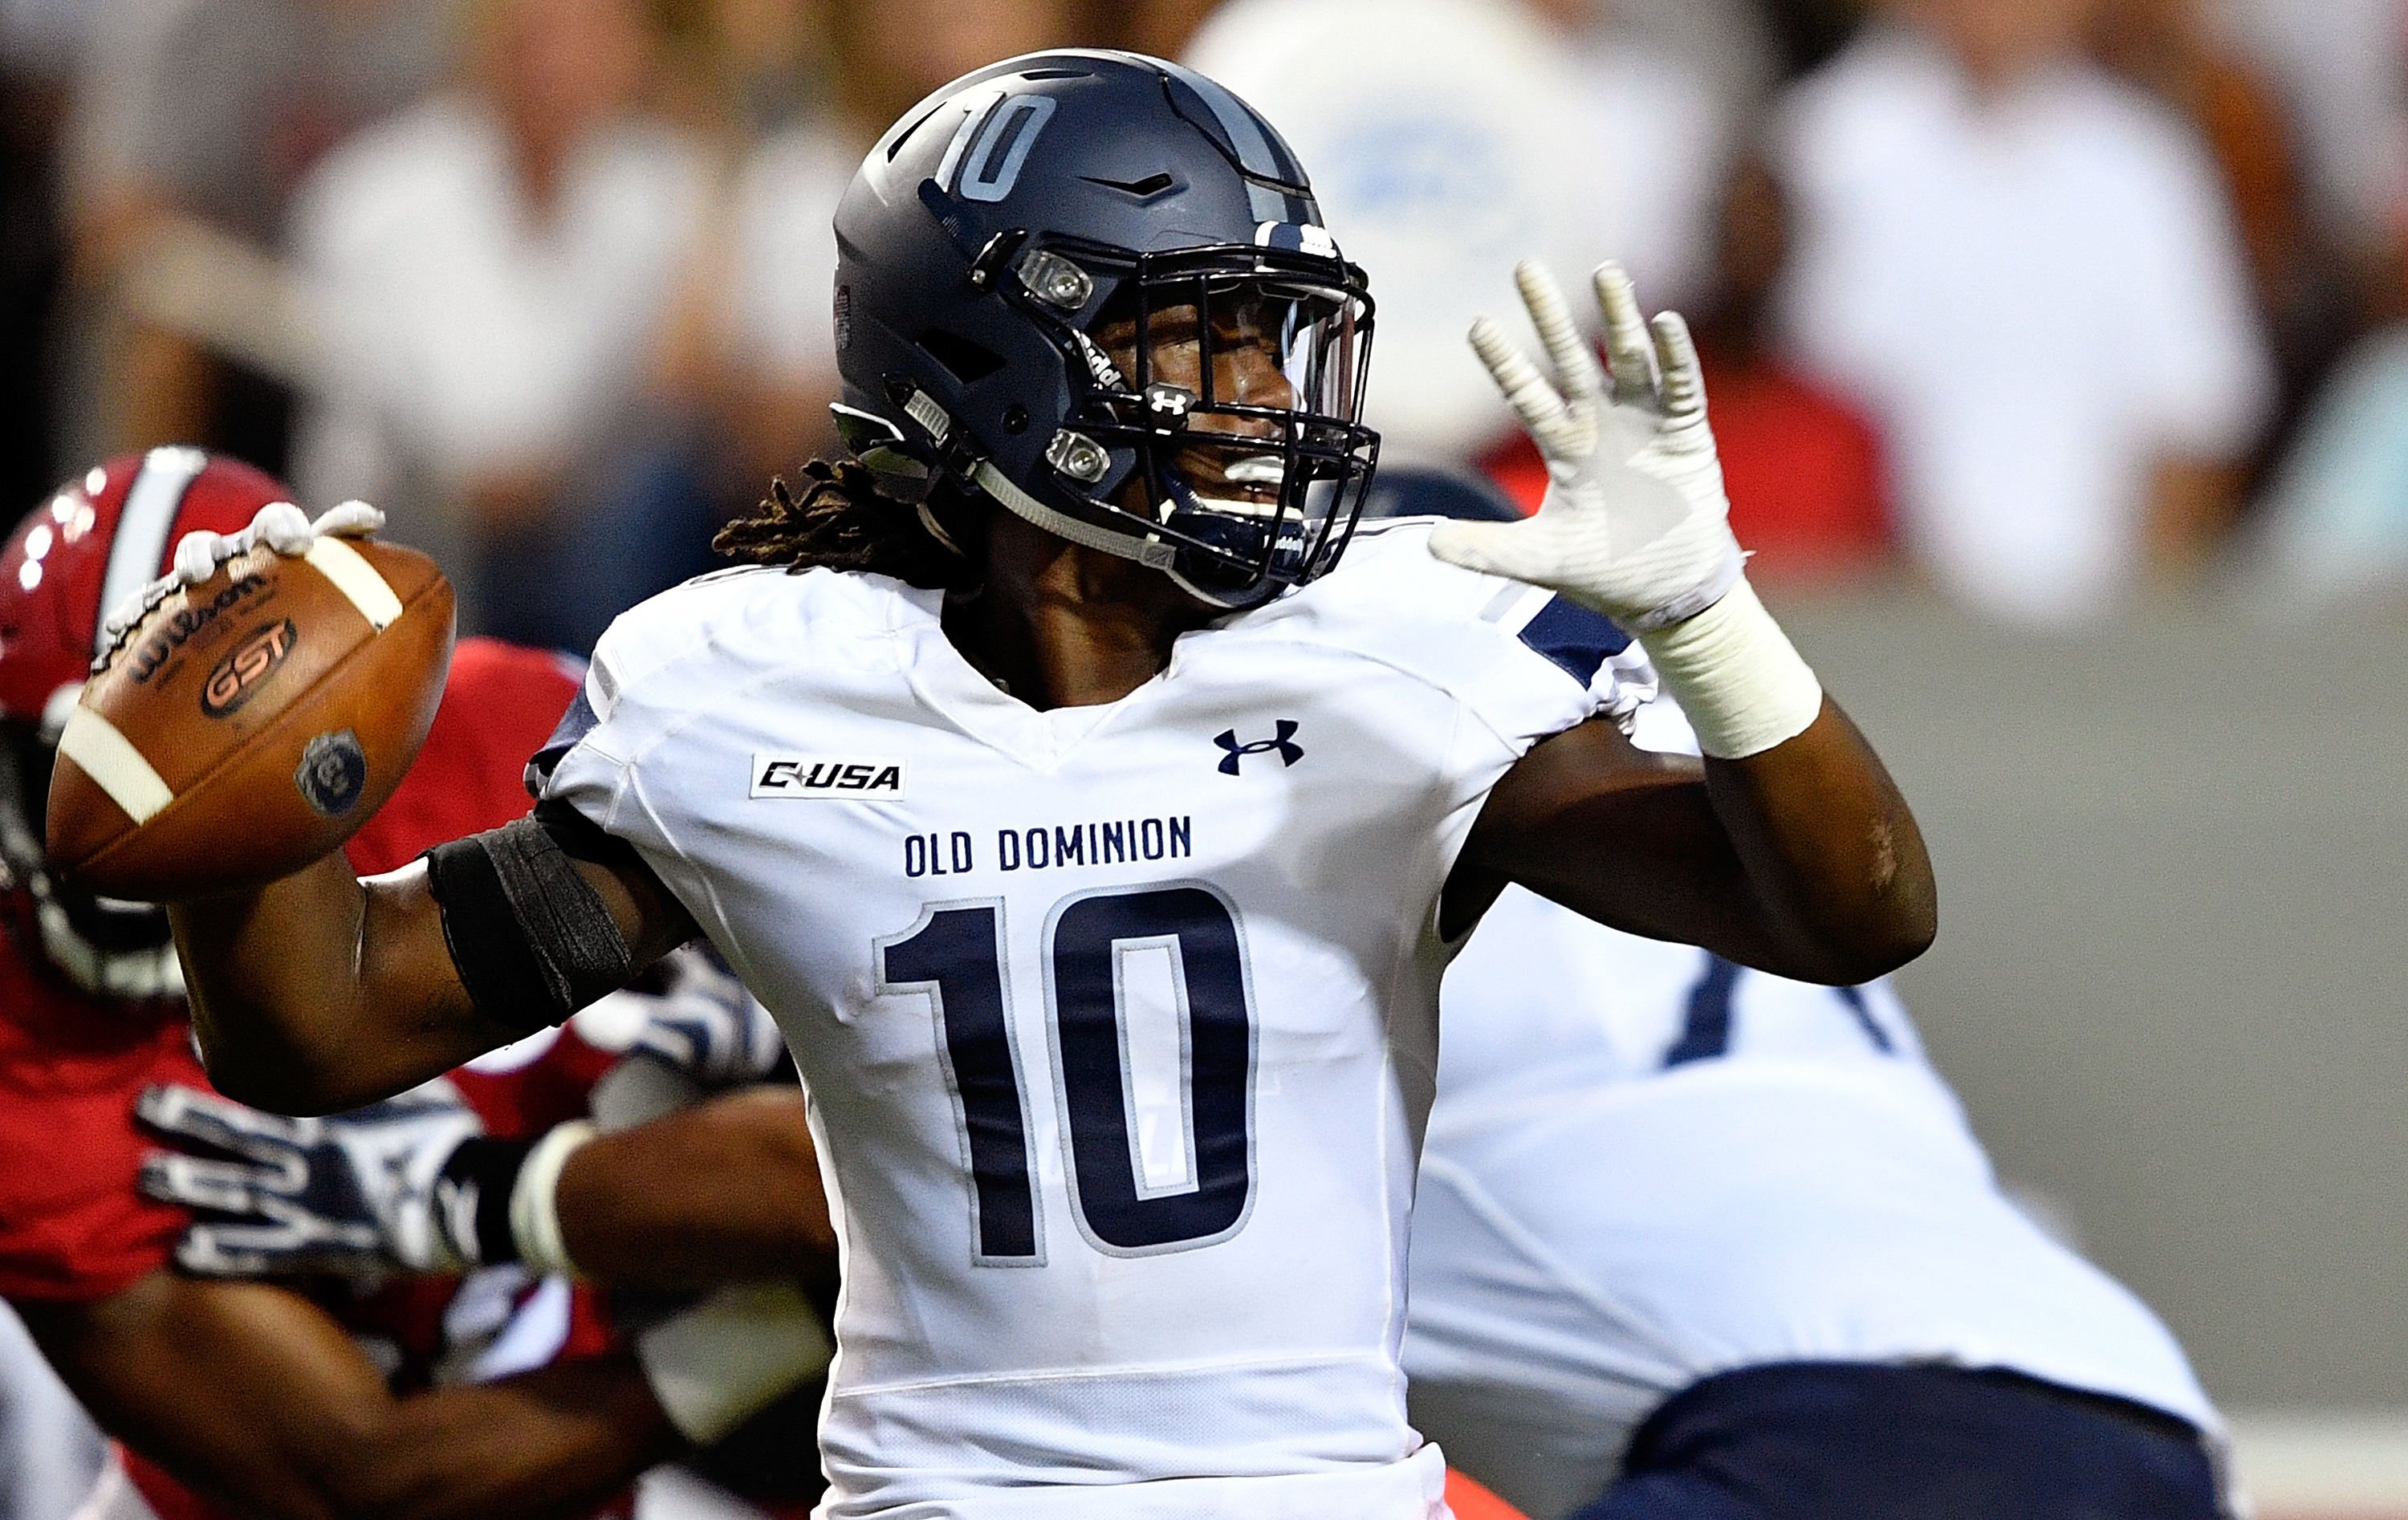 Liberty football paying over $1 million to host ODU in 2018